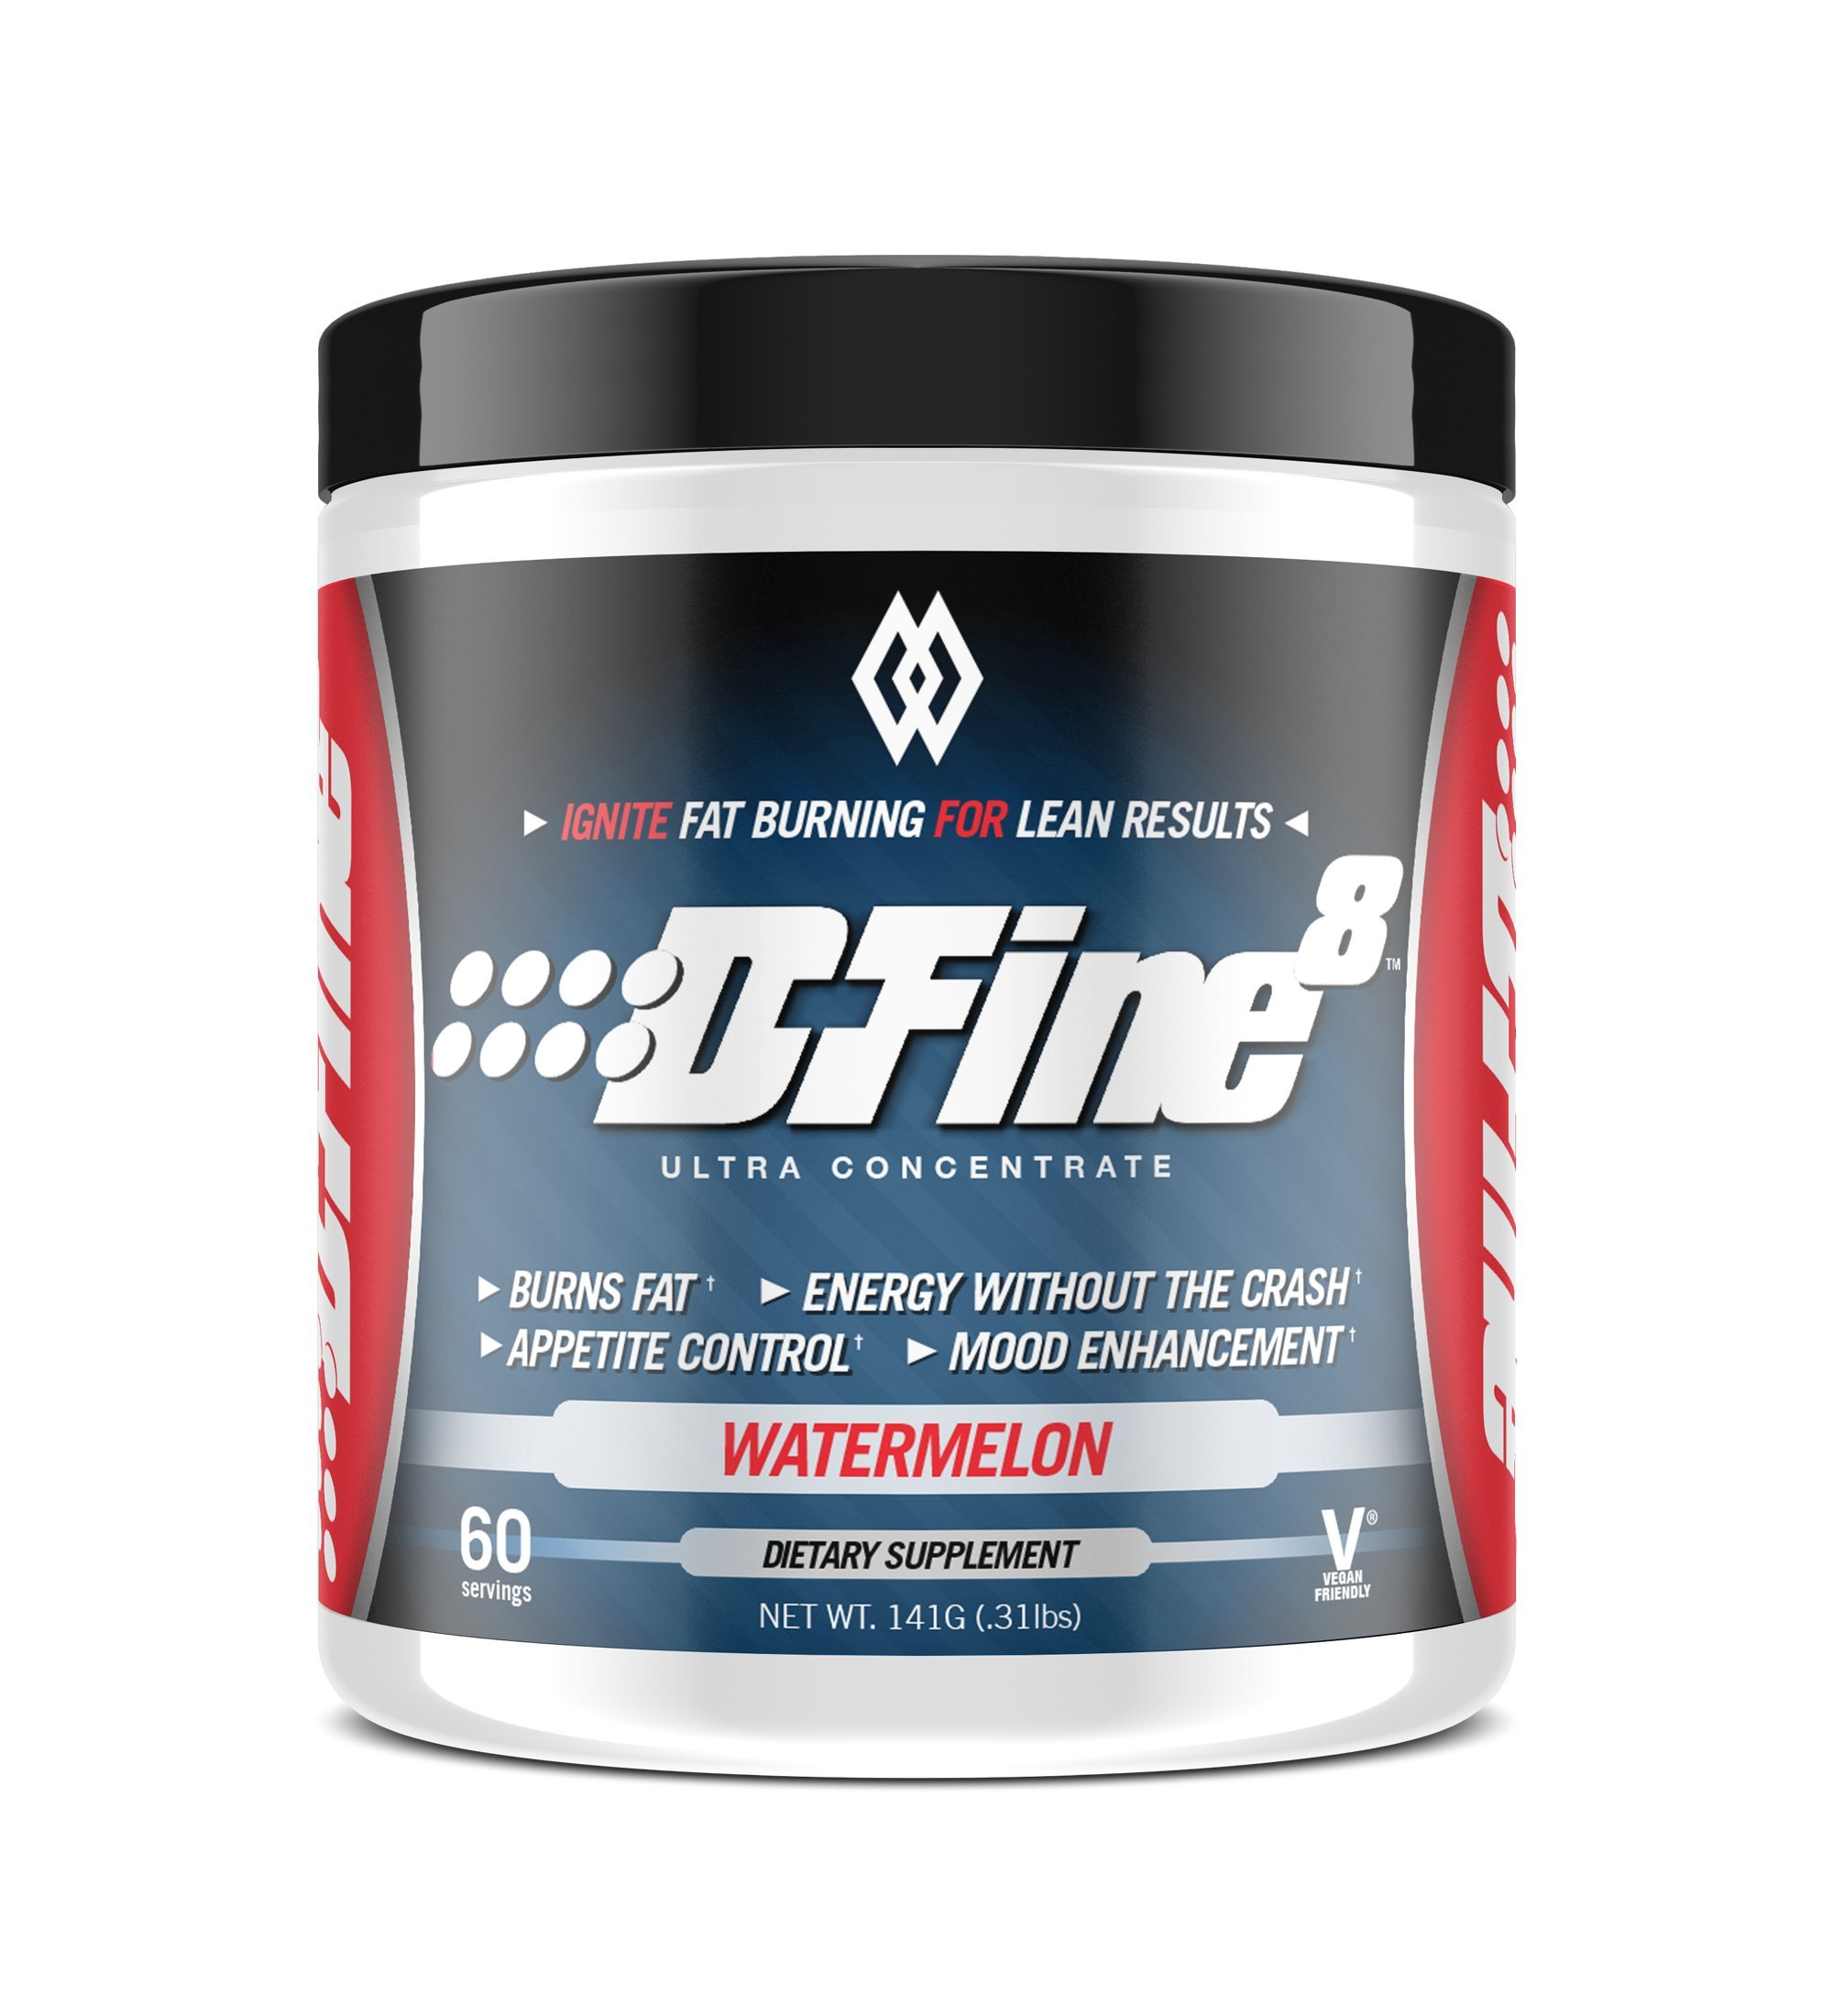 Musclewerks D-Fine8 - Fat Burner Thermogenic, Pre Workout Powder, Appetite Suppressant, Energy & Weight Loss Supplement for Men & Women - 60 Servings Vegan Friendly (Watermelon)